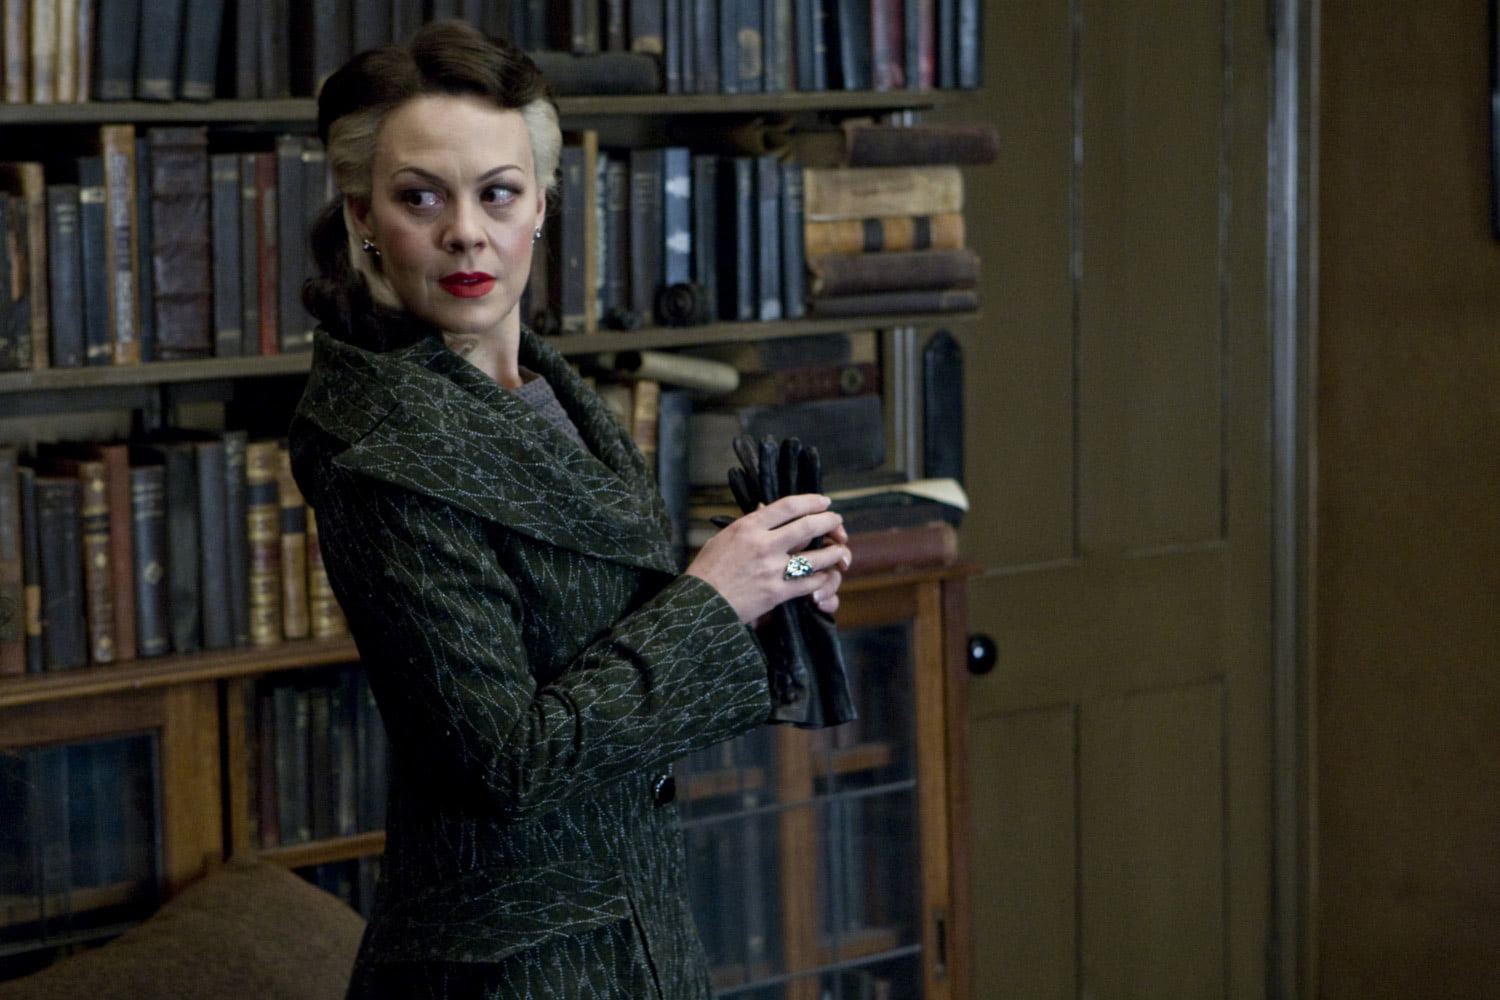 Narcissa Malfoy at Spinner's End